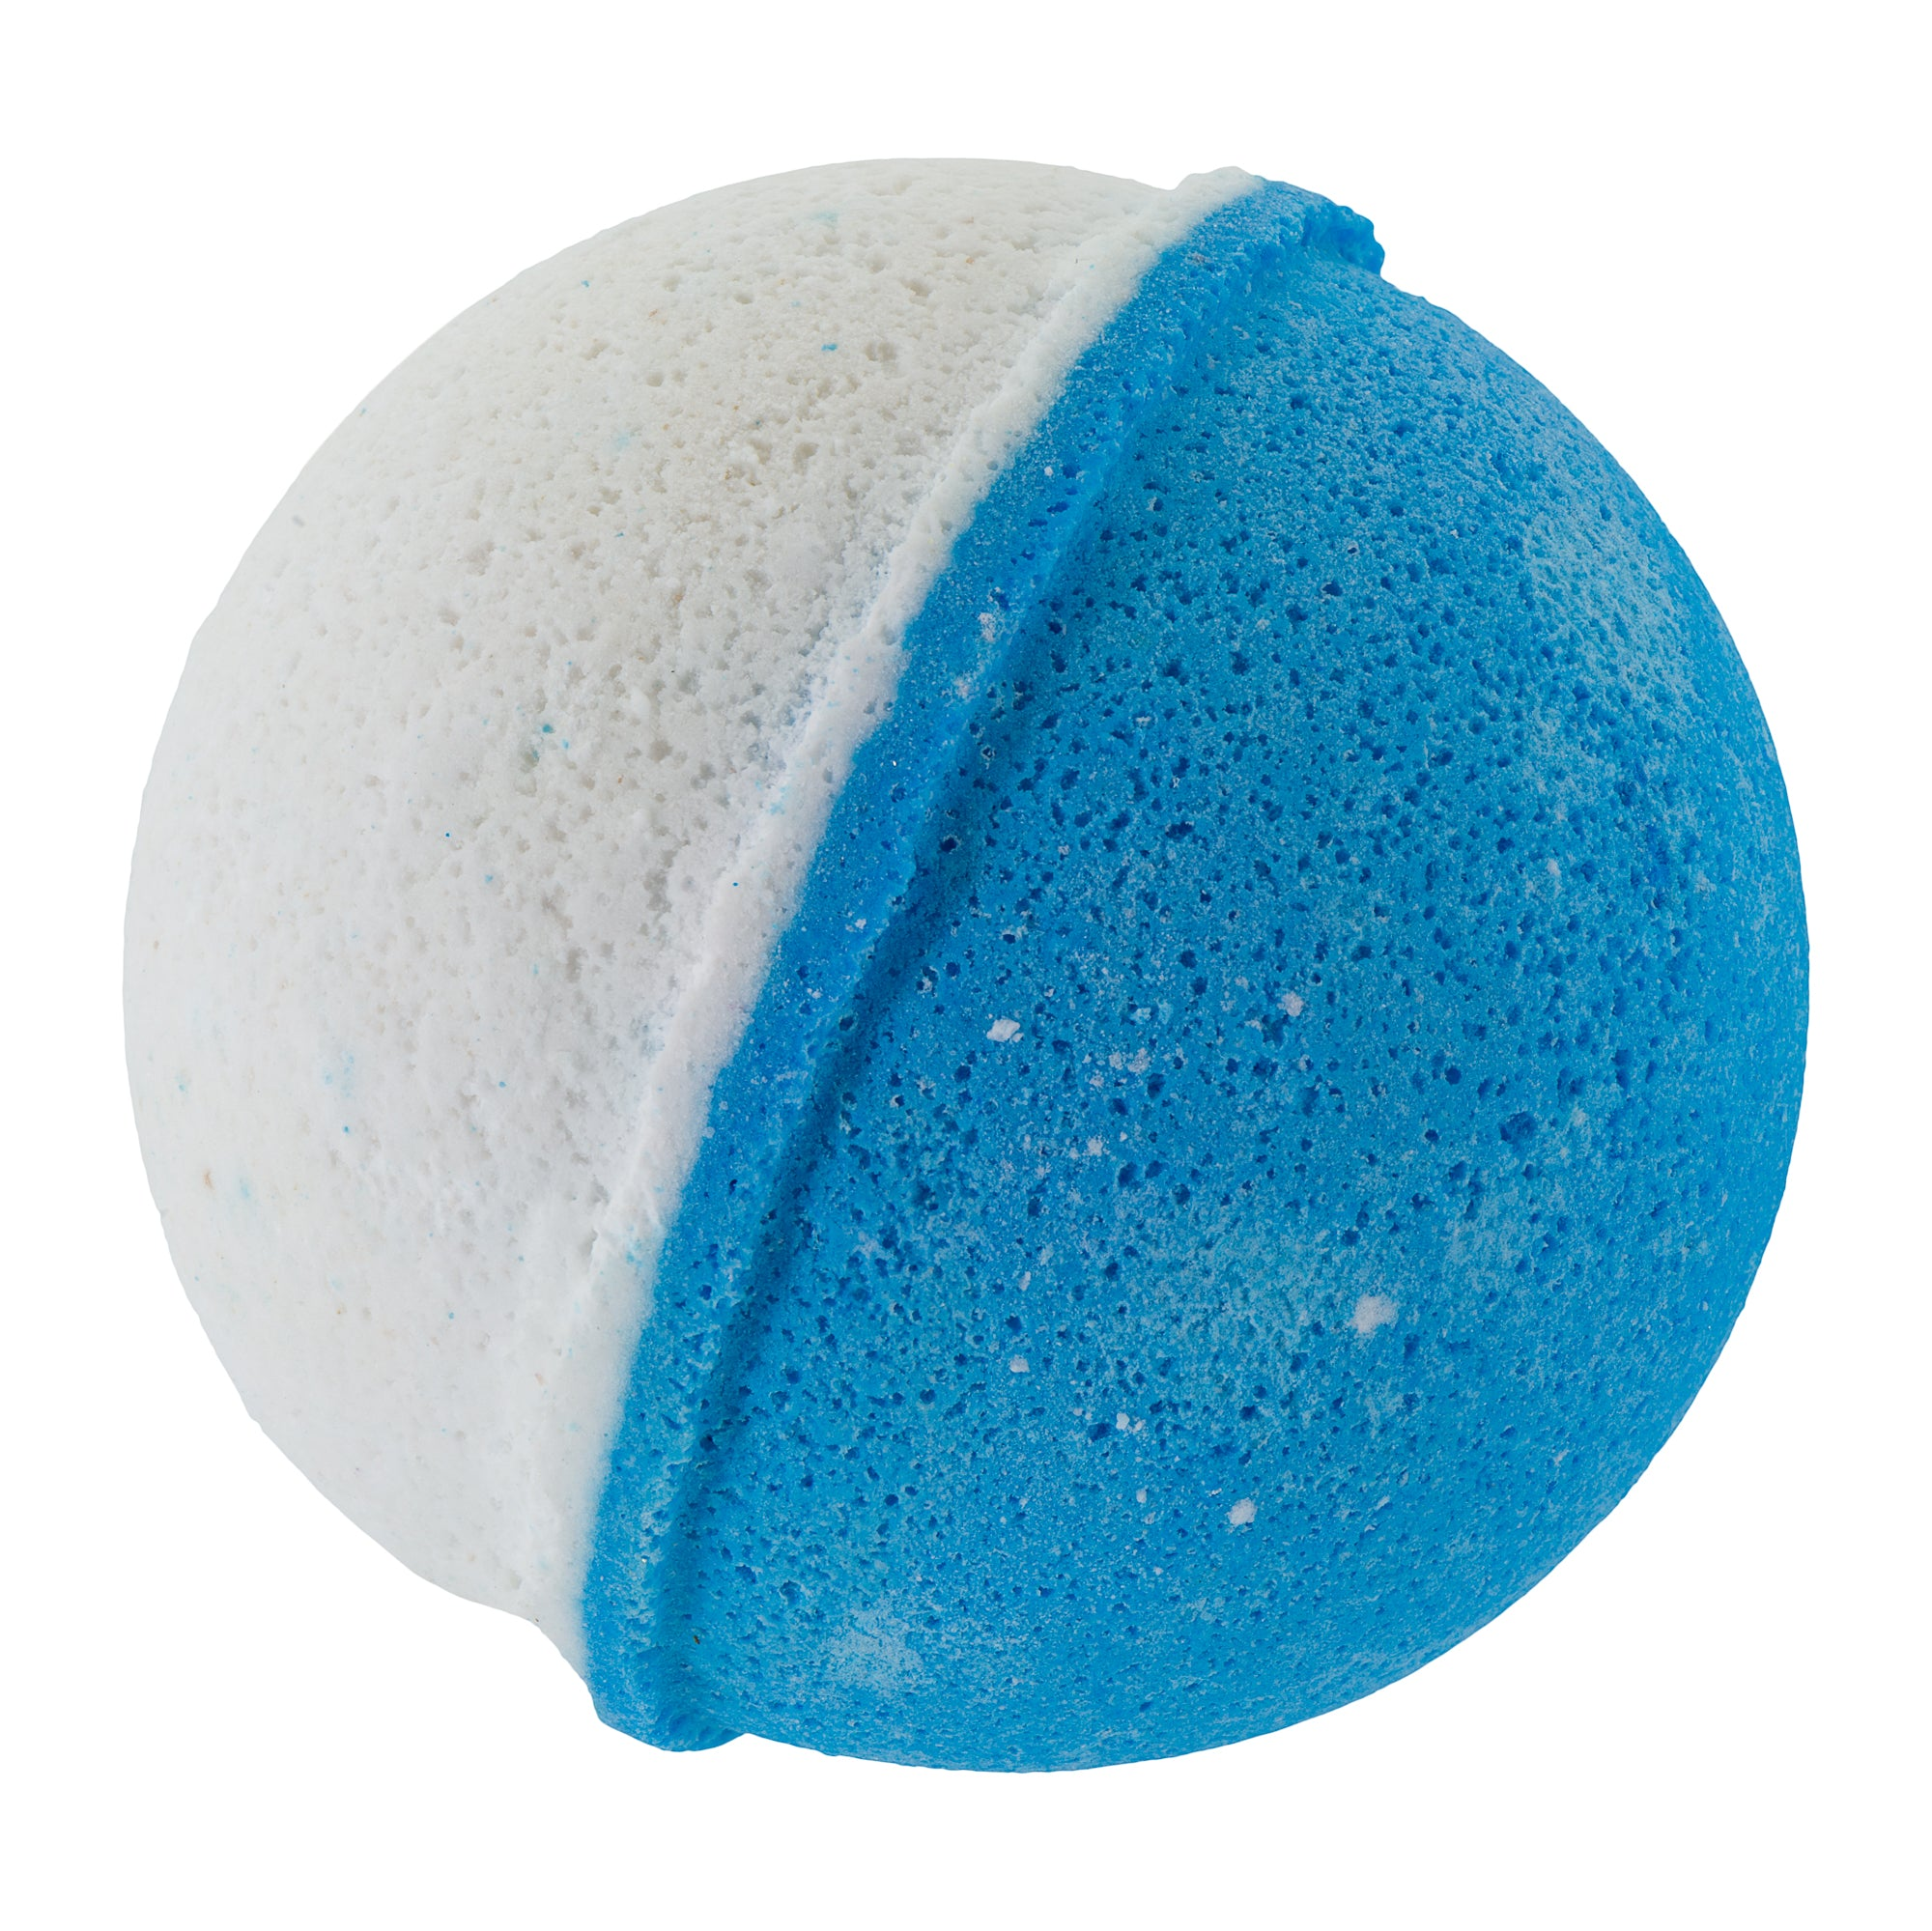 300mg Relaxation Bath Bomb